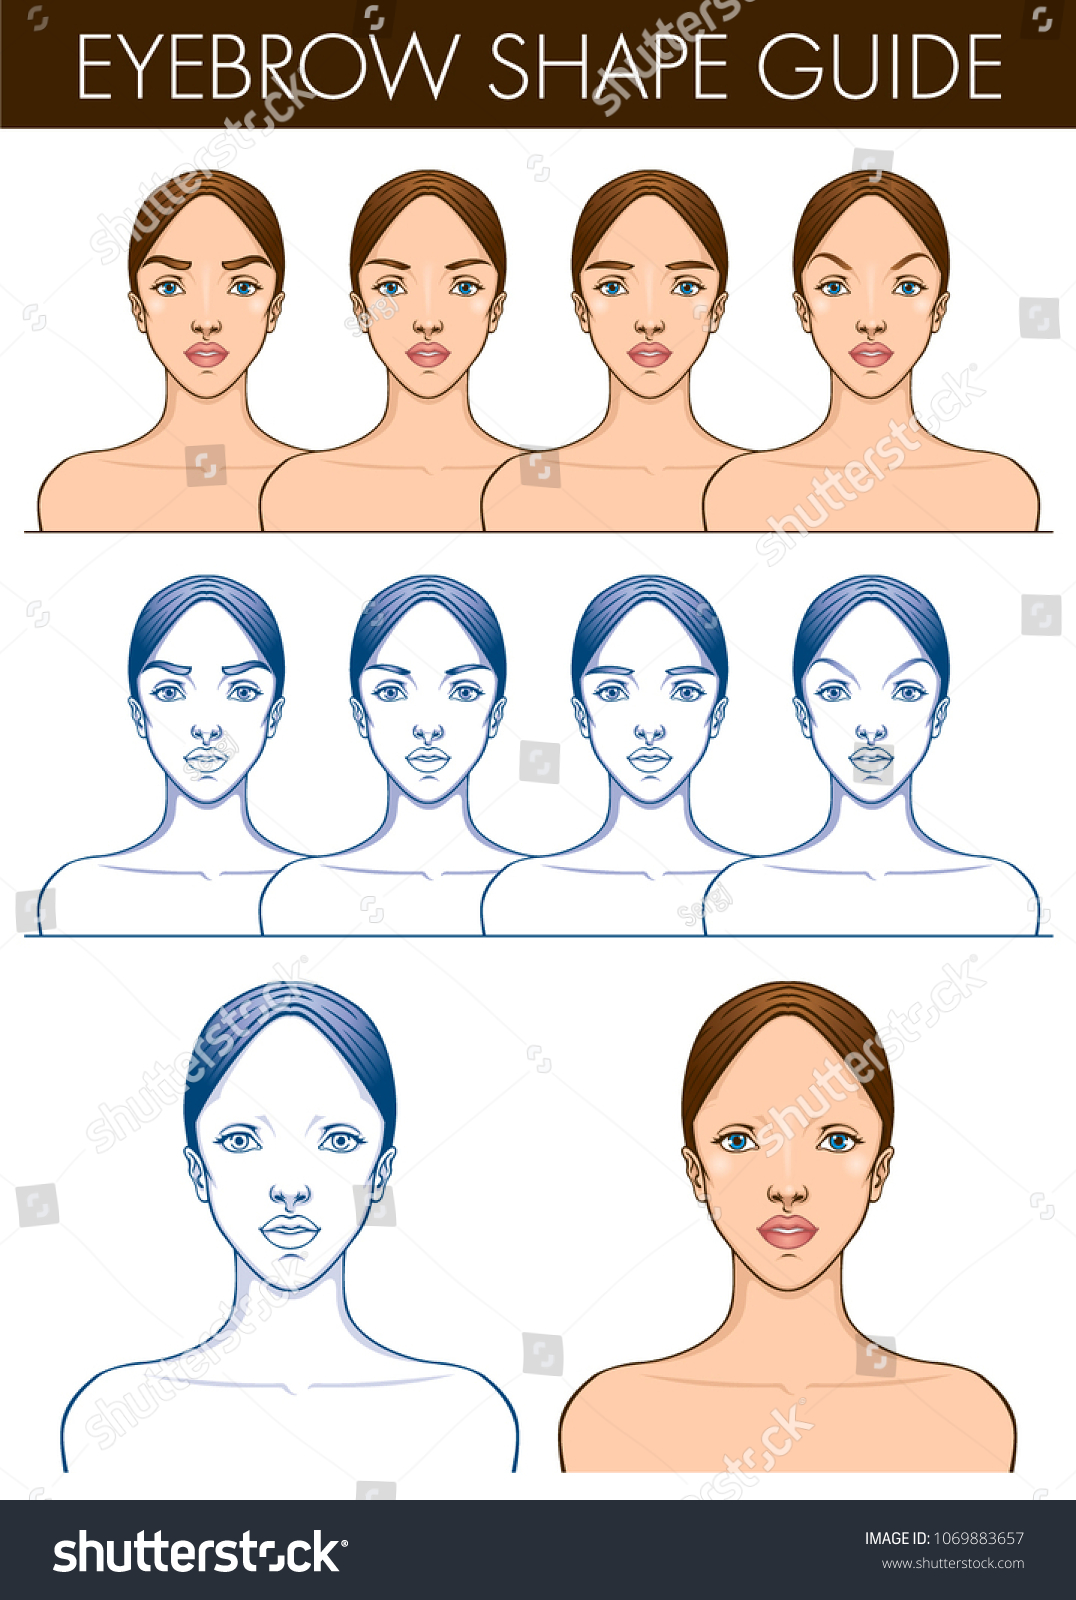 Eyebrow shape guide template female blank stock vector royalty free eyebrow shape guide template of female blank face vector illustration of pretty young woman maxwellsz